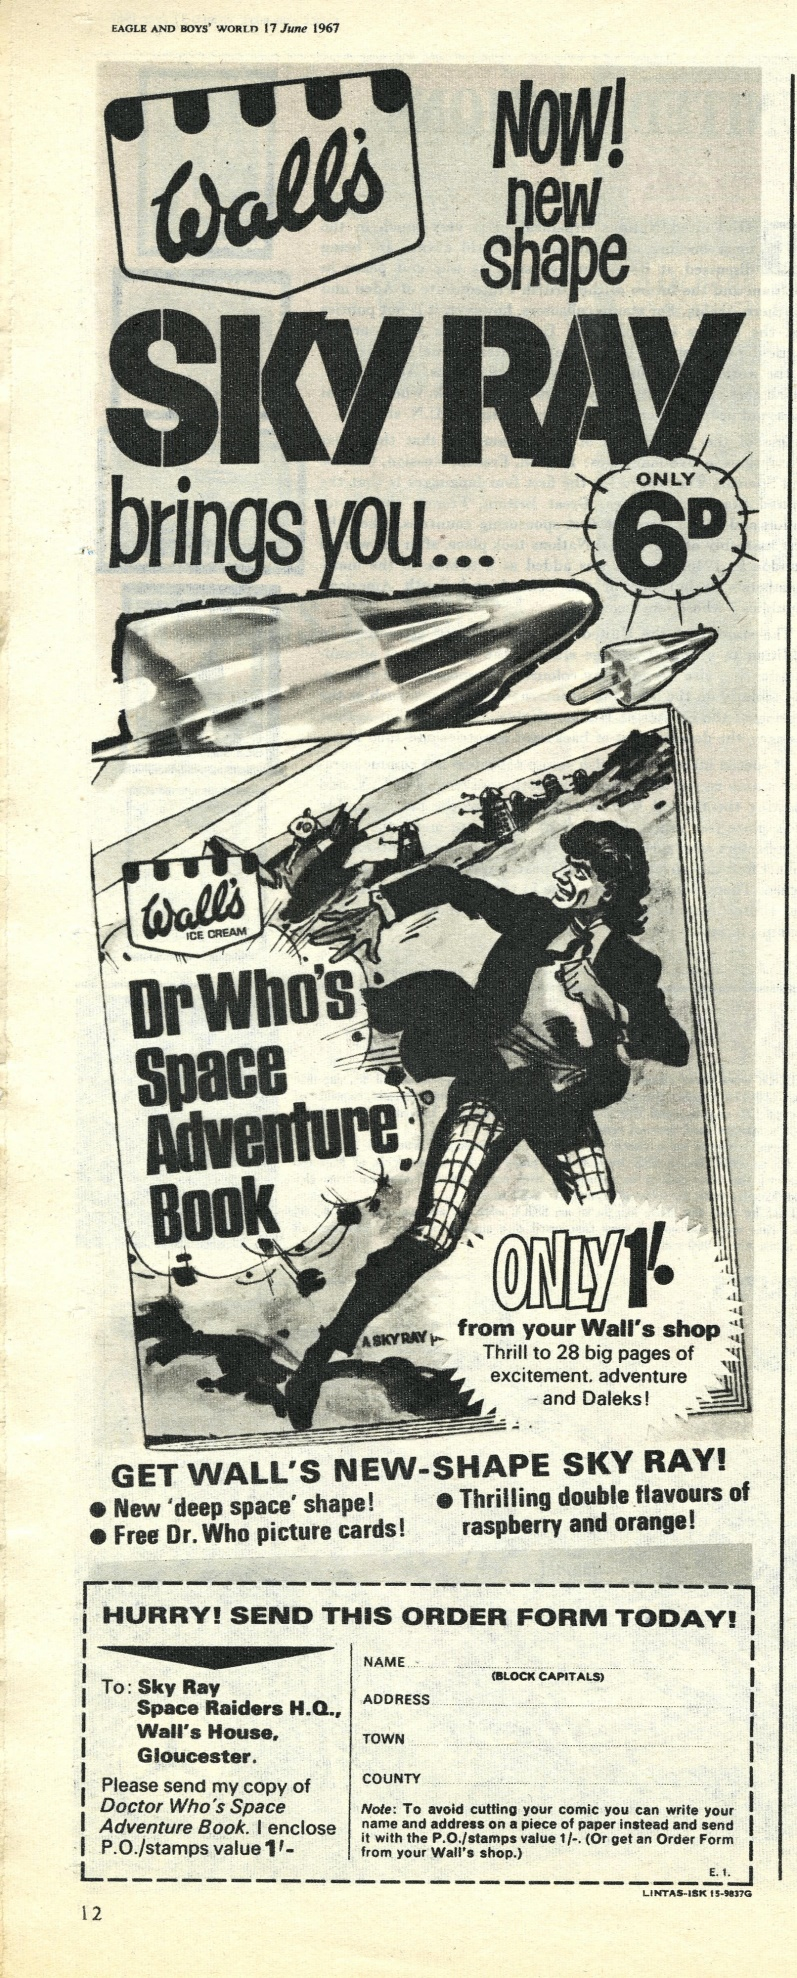 Ad. for Wall's Sky Ray in Eagle & Boys World, vol. 18, number 24, 17 June 1967